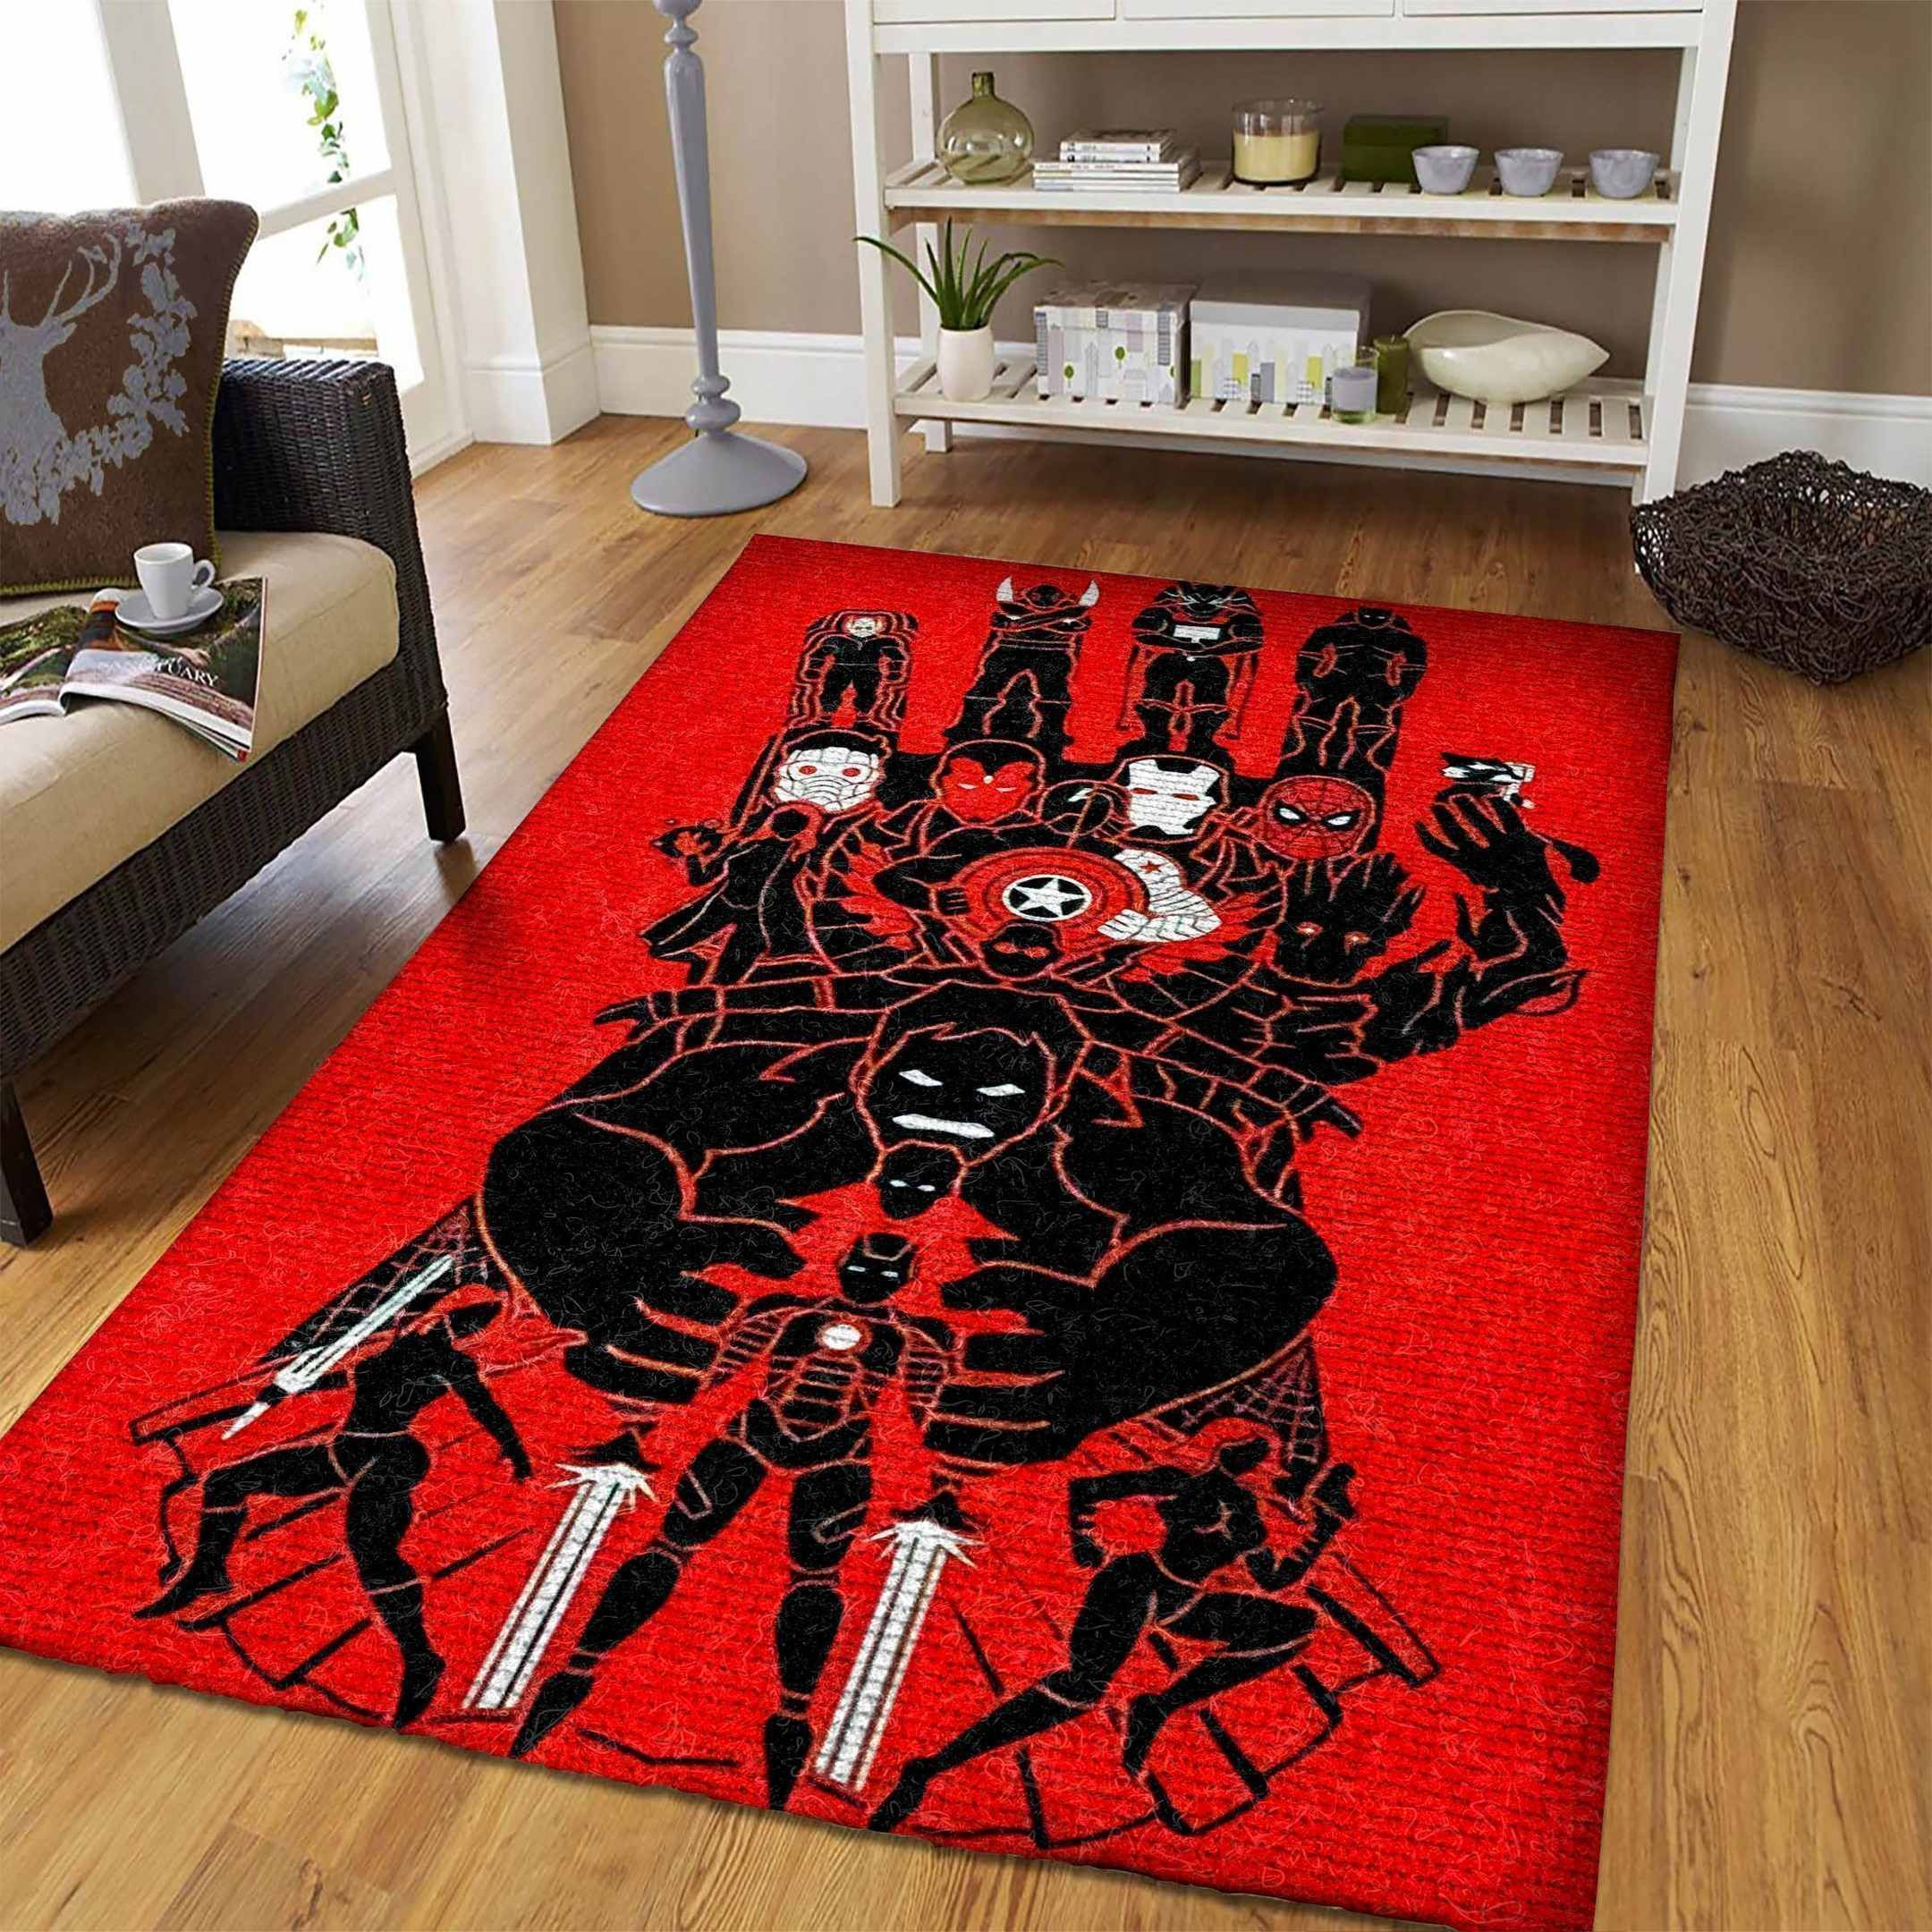 Amazon Avengers Living Room Area No5684 Rug